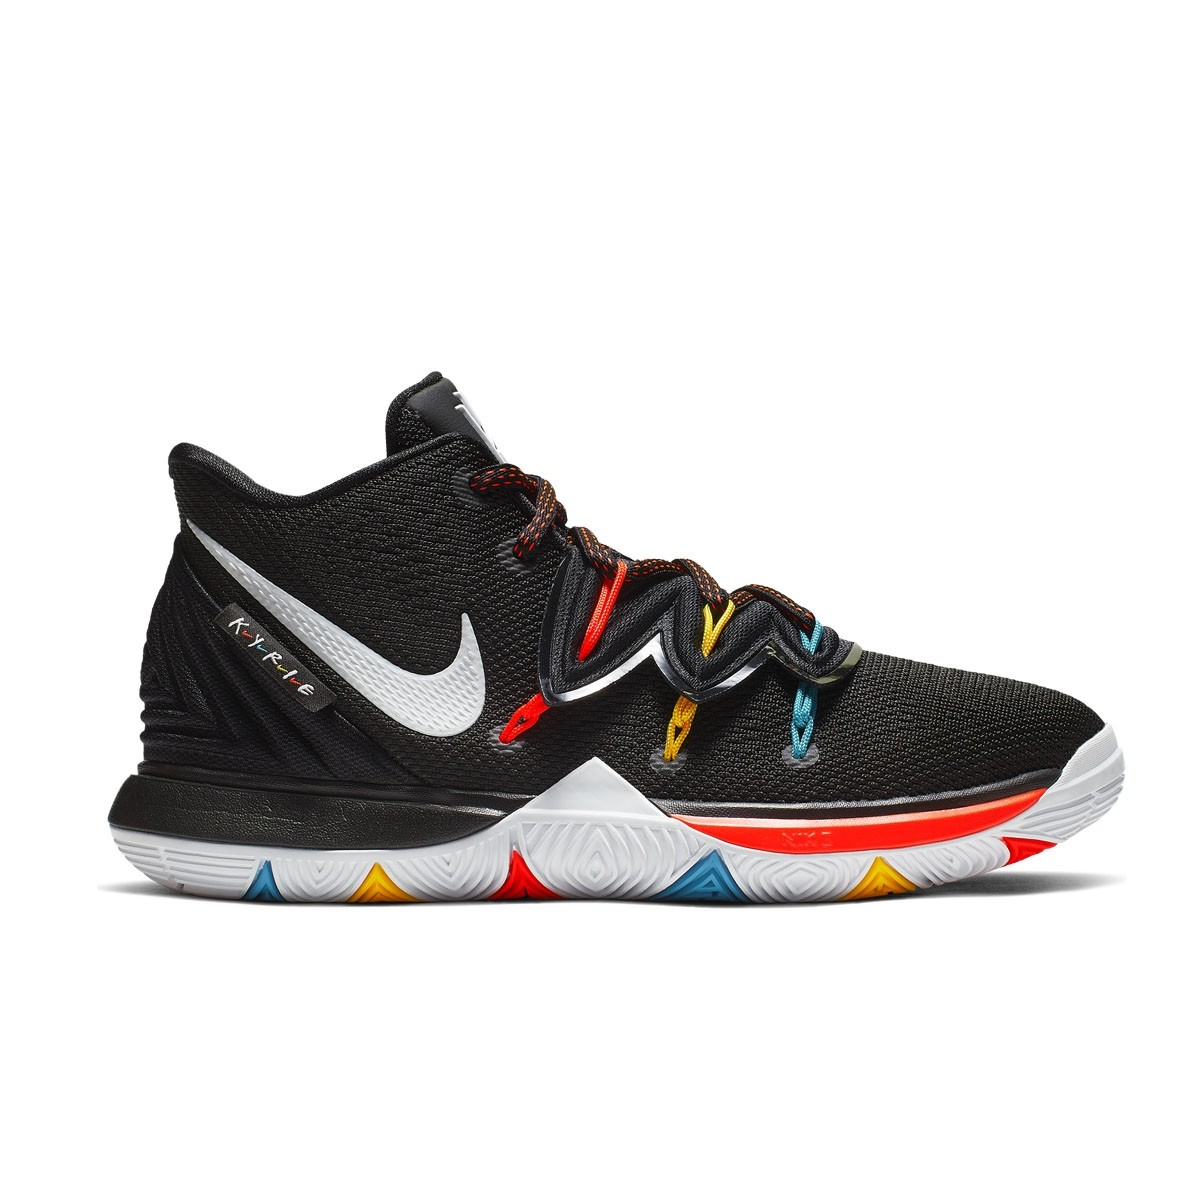 32e7ffbe513f Buy Nike Kyrie 5 GS  Friends  Basketball shoes   sneakers